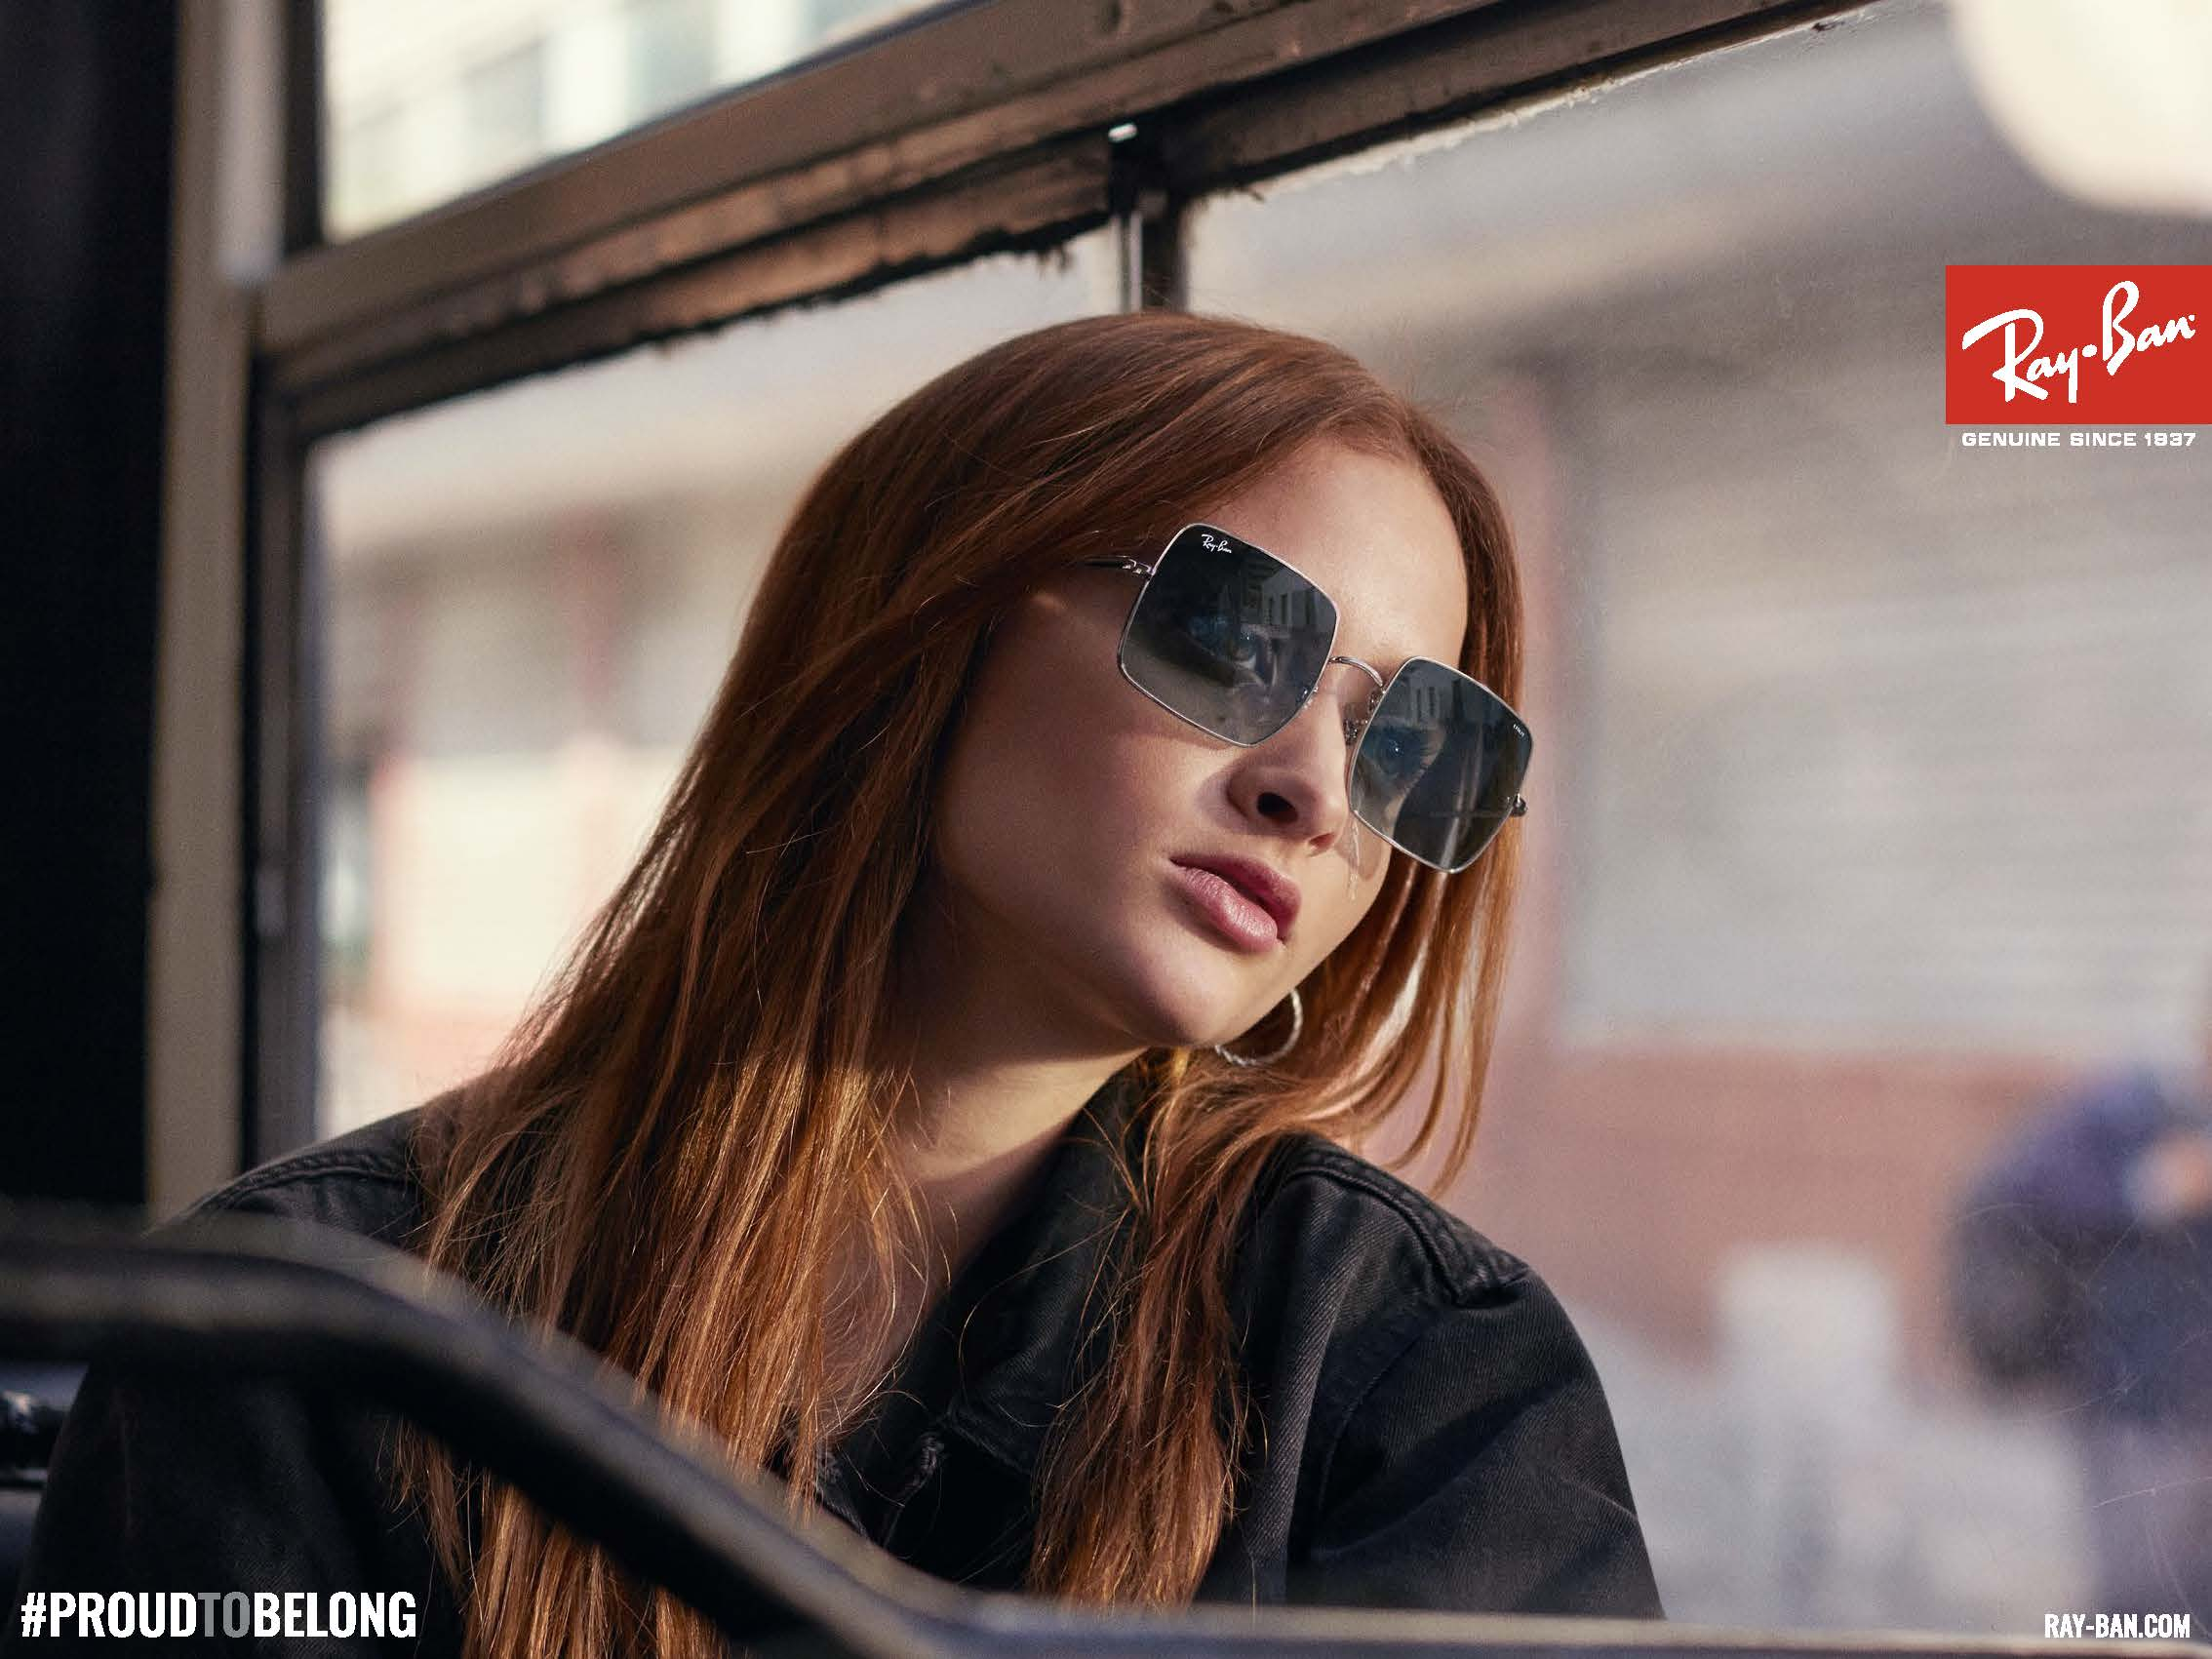 Ray-Ban campagna Proud To Belong 2019